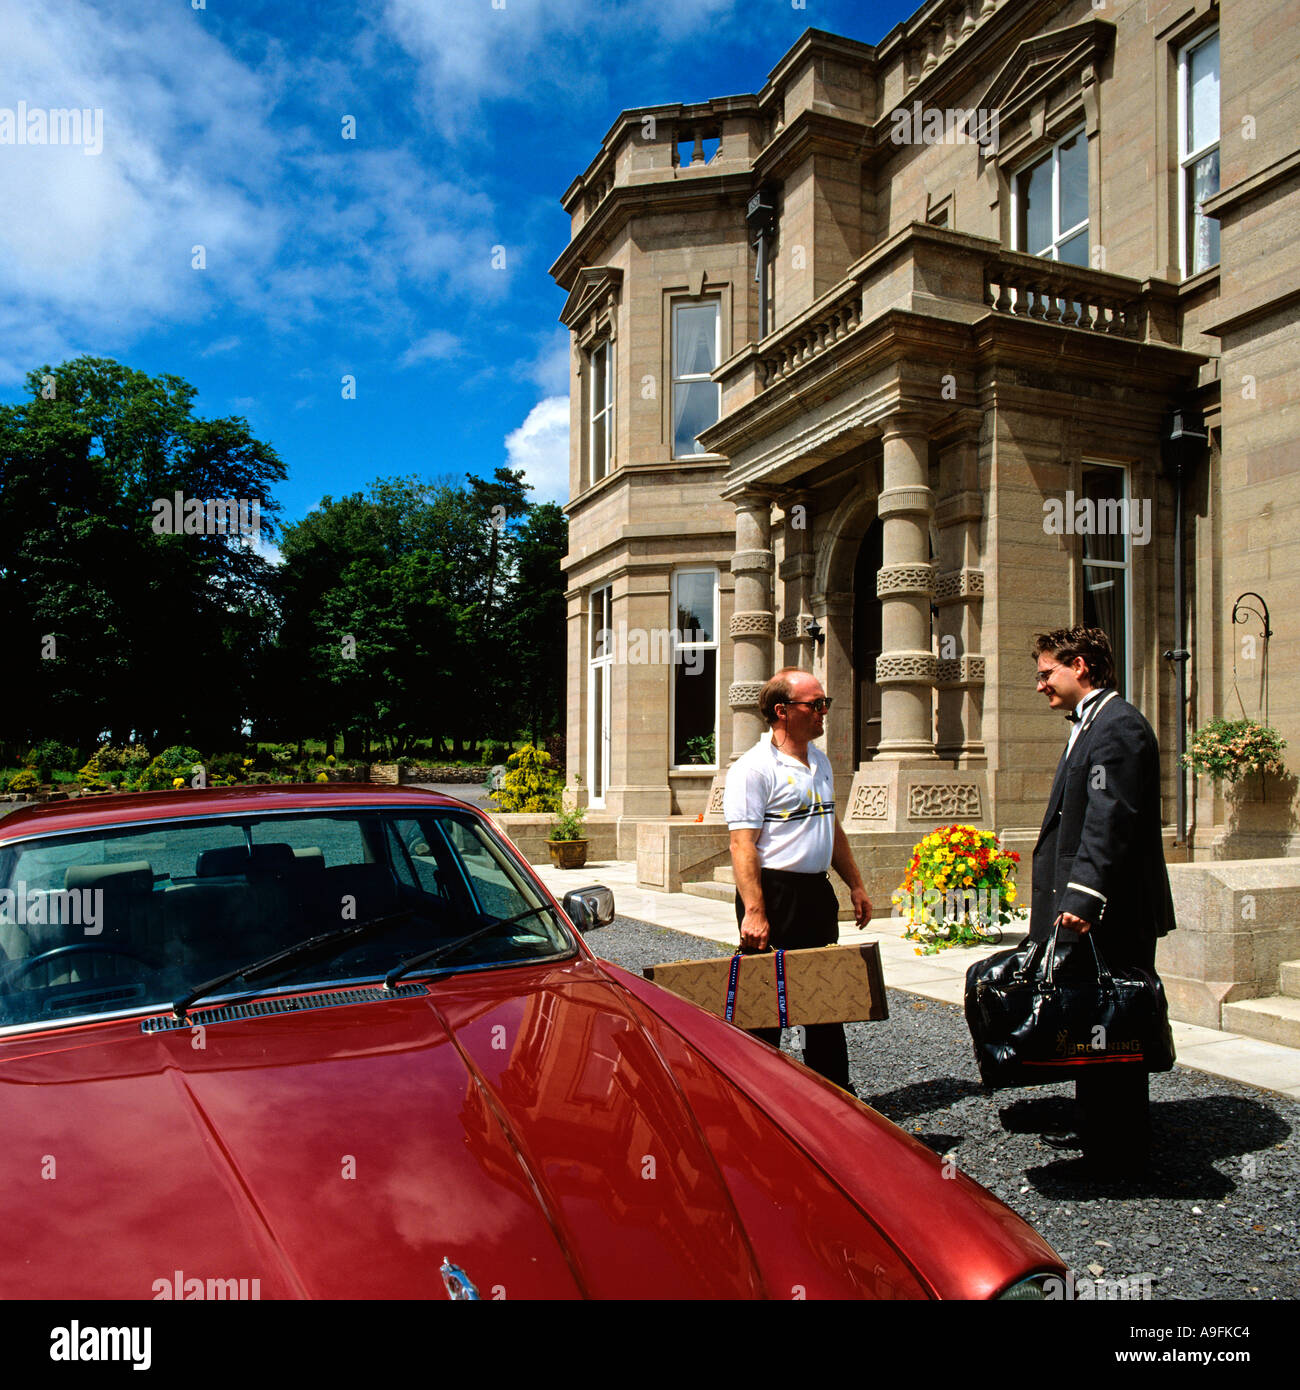 Country house hotel arrival of guests - Stock Image